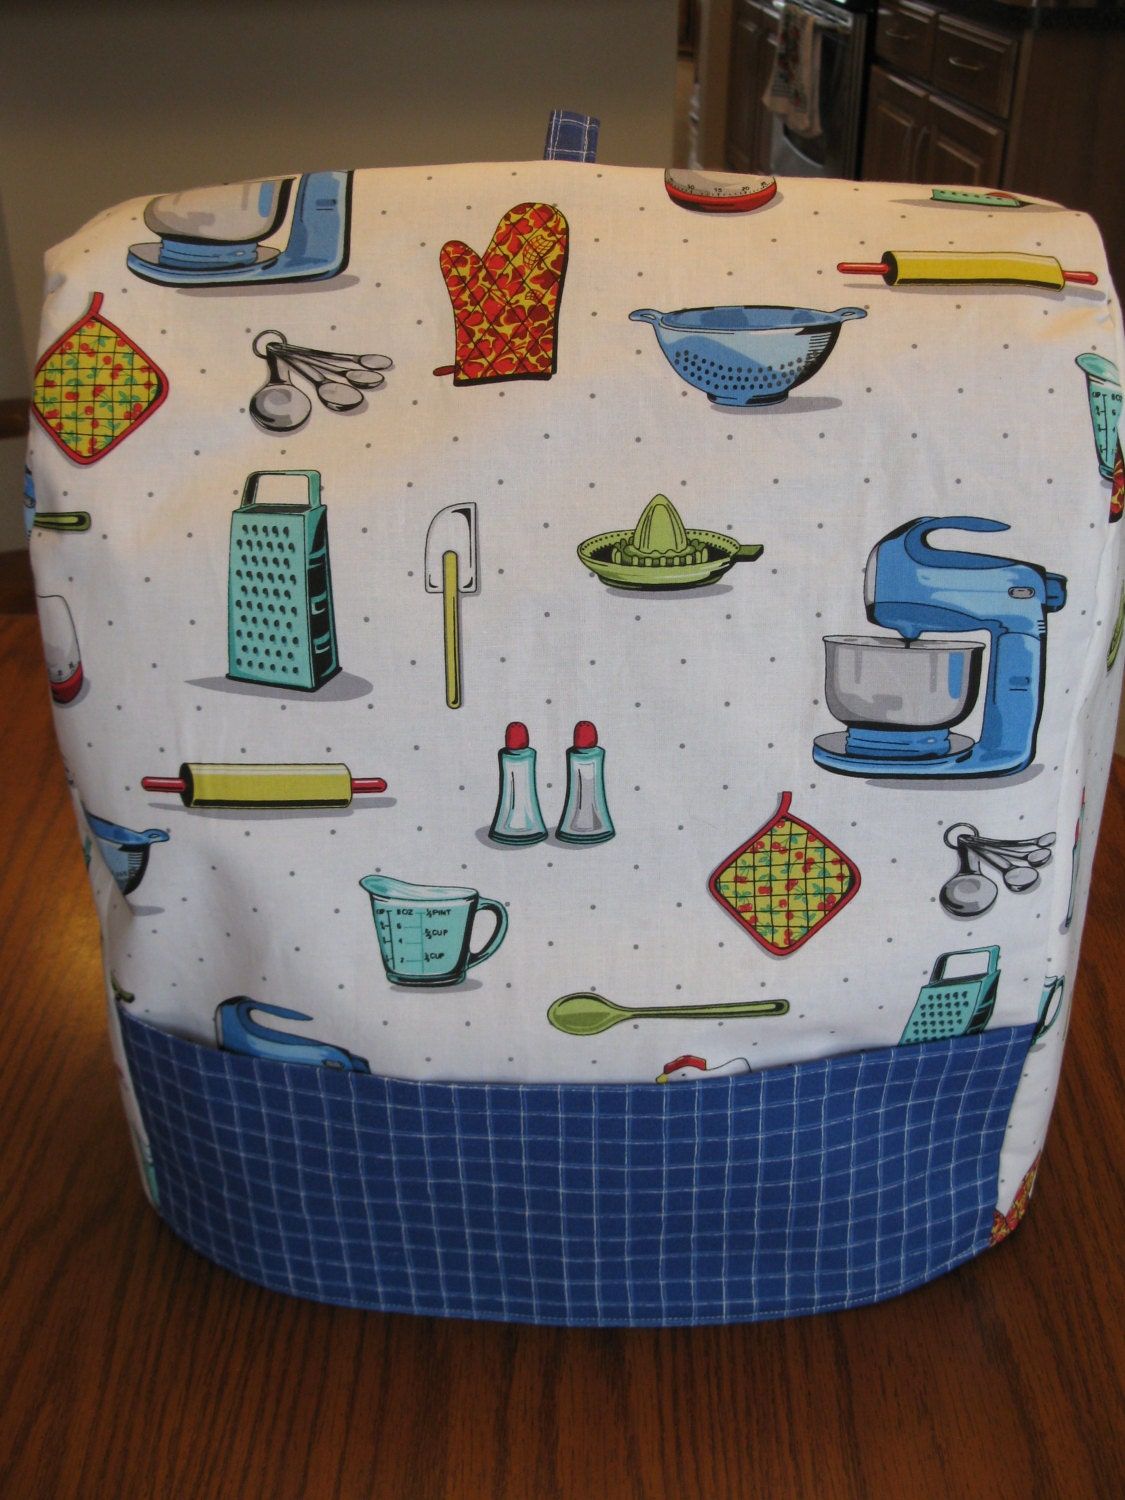 Kitchenaid Mixer Cover Fits Classic and by KathieSewHappy